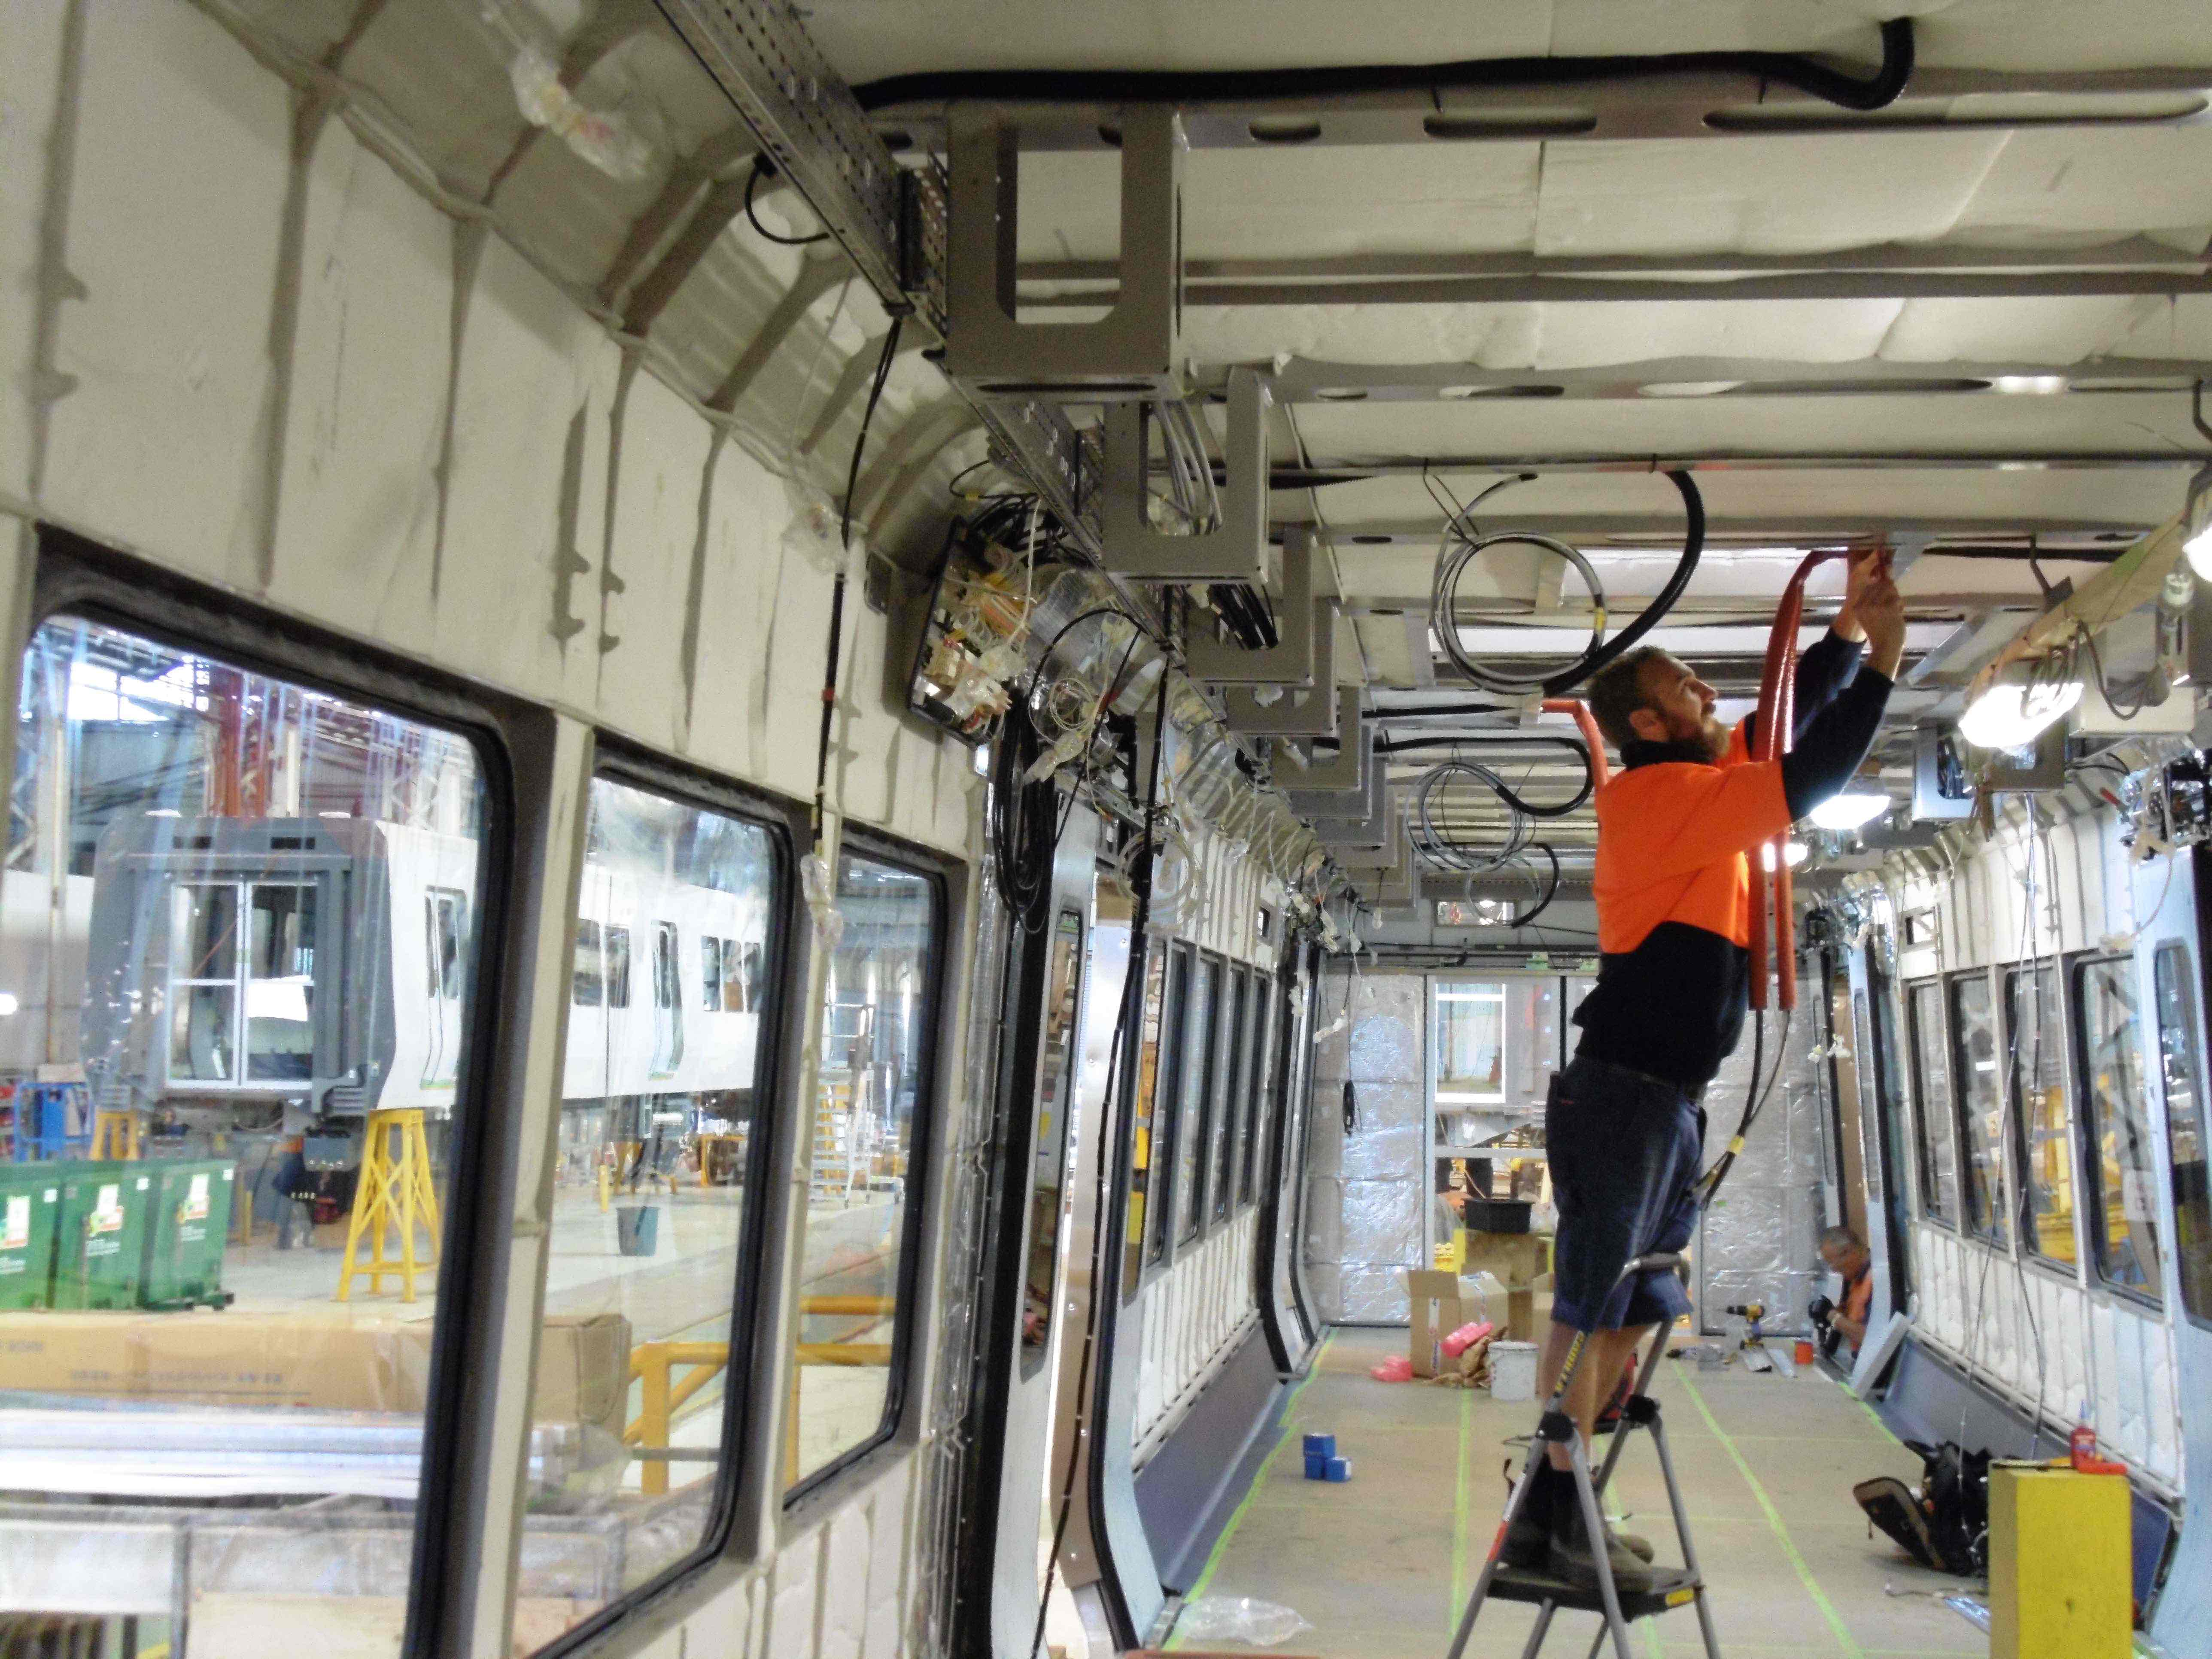 union win new rail work for alstom n manufacturing hard at work fitting out the interiors of new metro trains at alstom ballarat